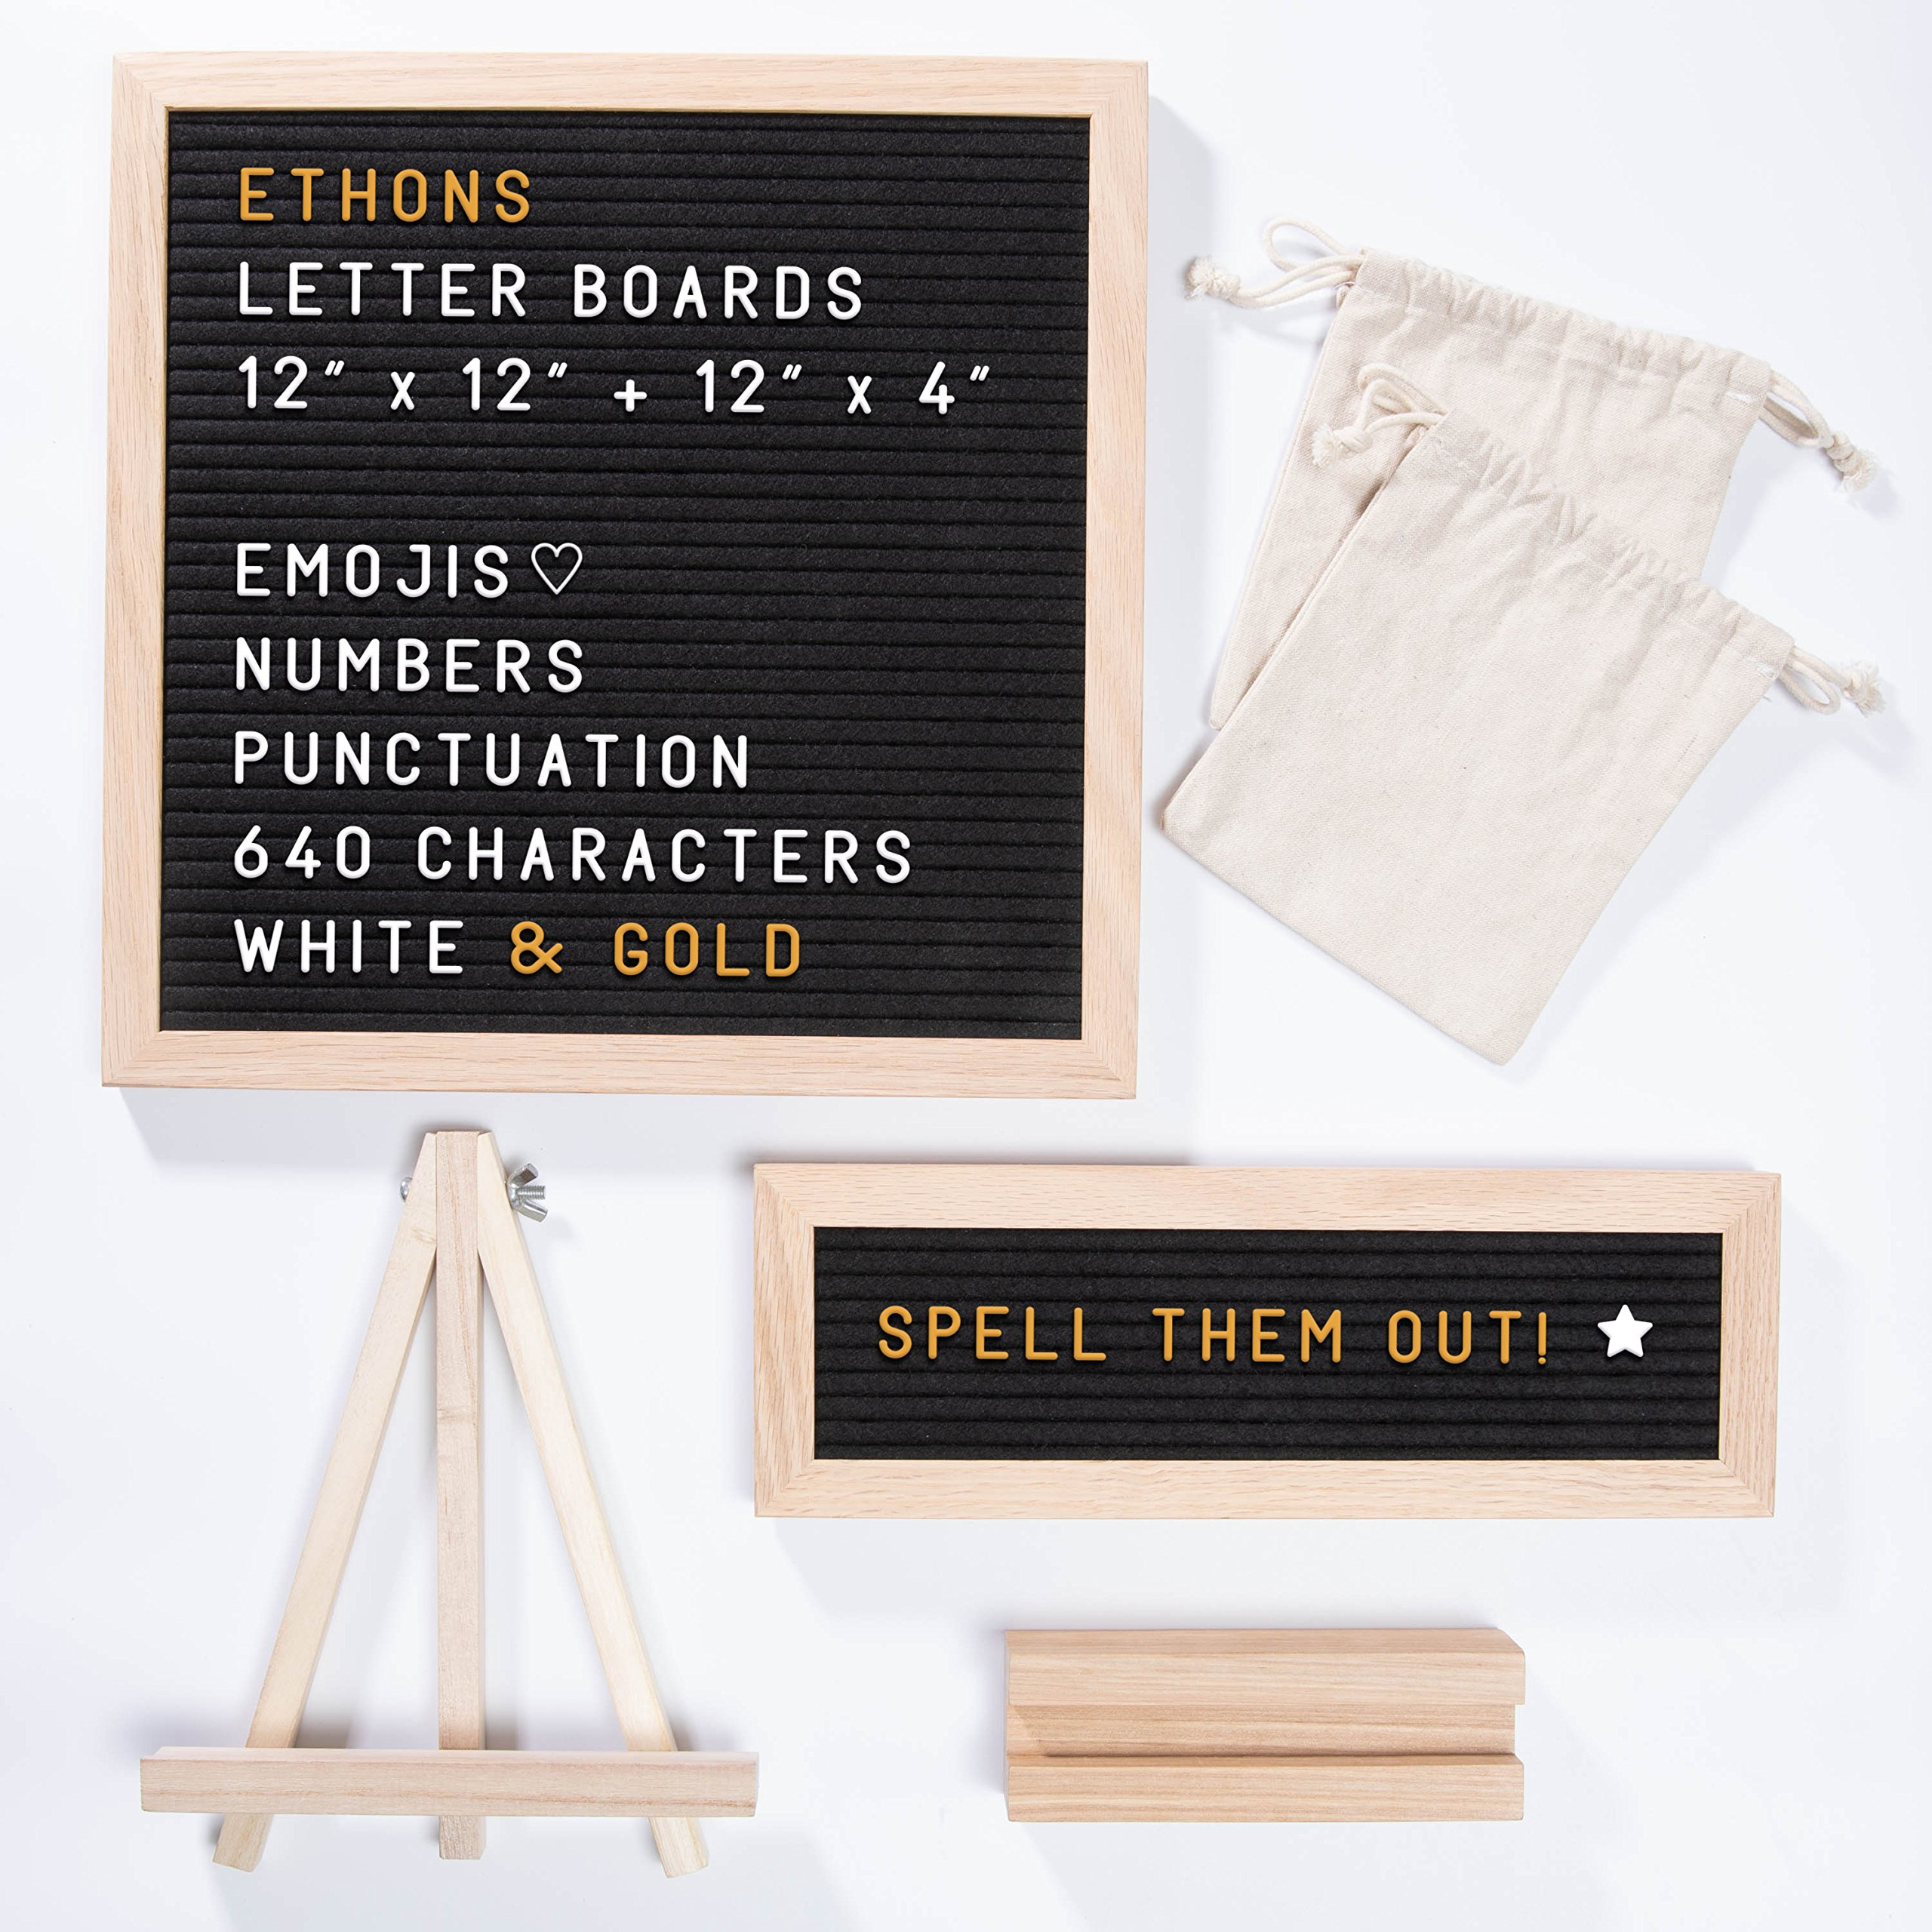 """ETHONS Felt Letter Board Super Pack - 2 Quality Letter Boards 12""""x12"""" & 12""""x4"""" - Personalize with 640 Characters in White & Gold - Gift-Ready Display Boards - Includes 2 Wood Stands and 2 Canvas Bags"""